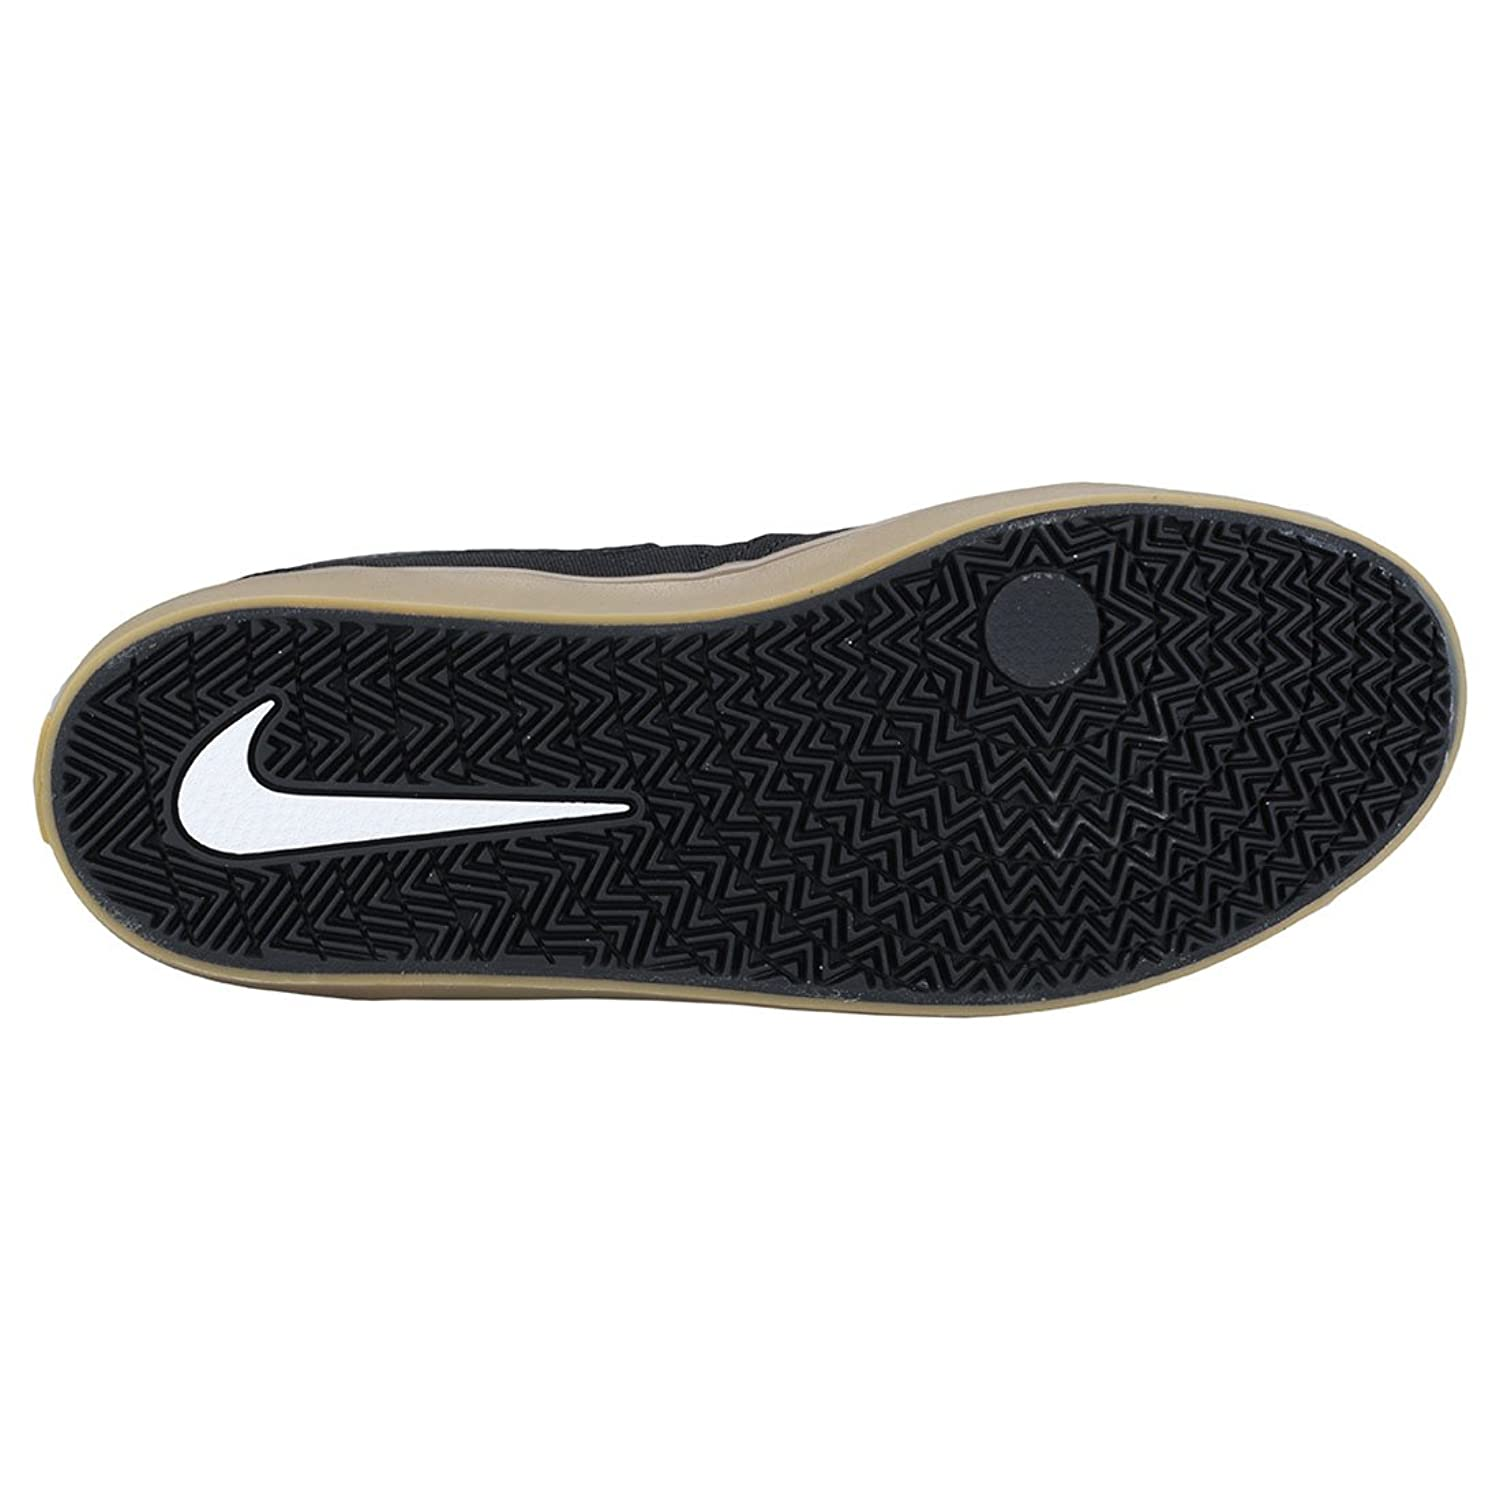 9f574d49b7487 Bingua.com - Amazon.com | NIKE Men's SB Check Solar CNVS Skate Shoe ...